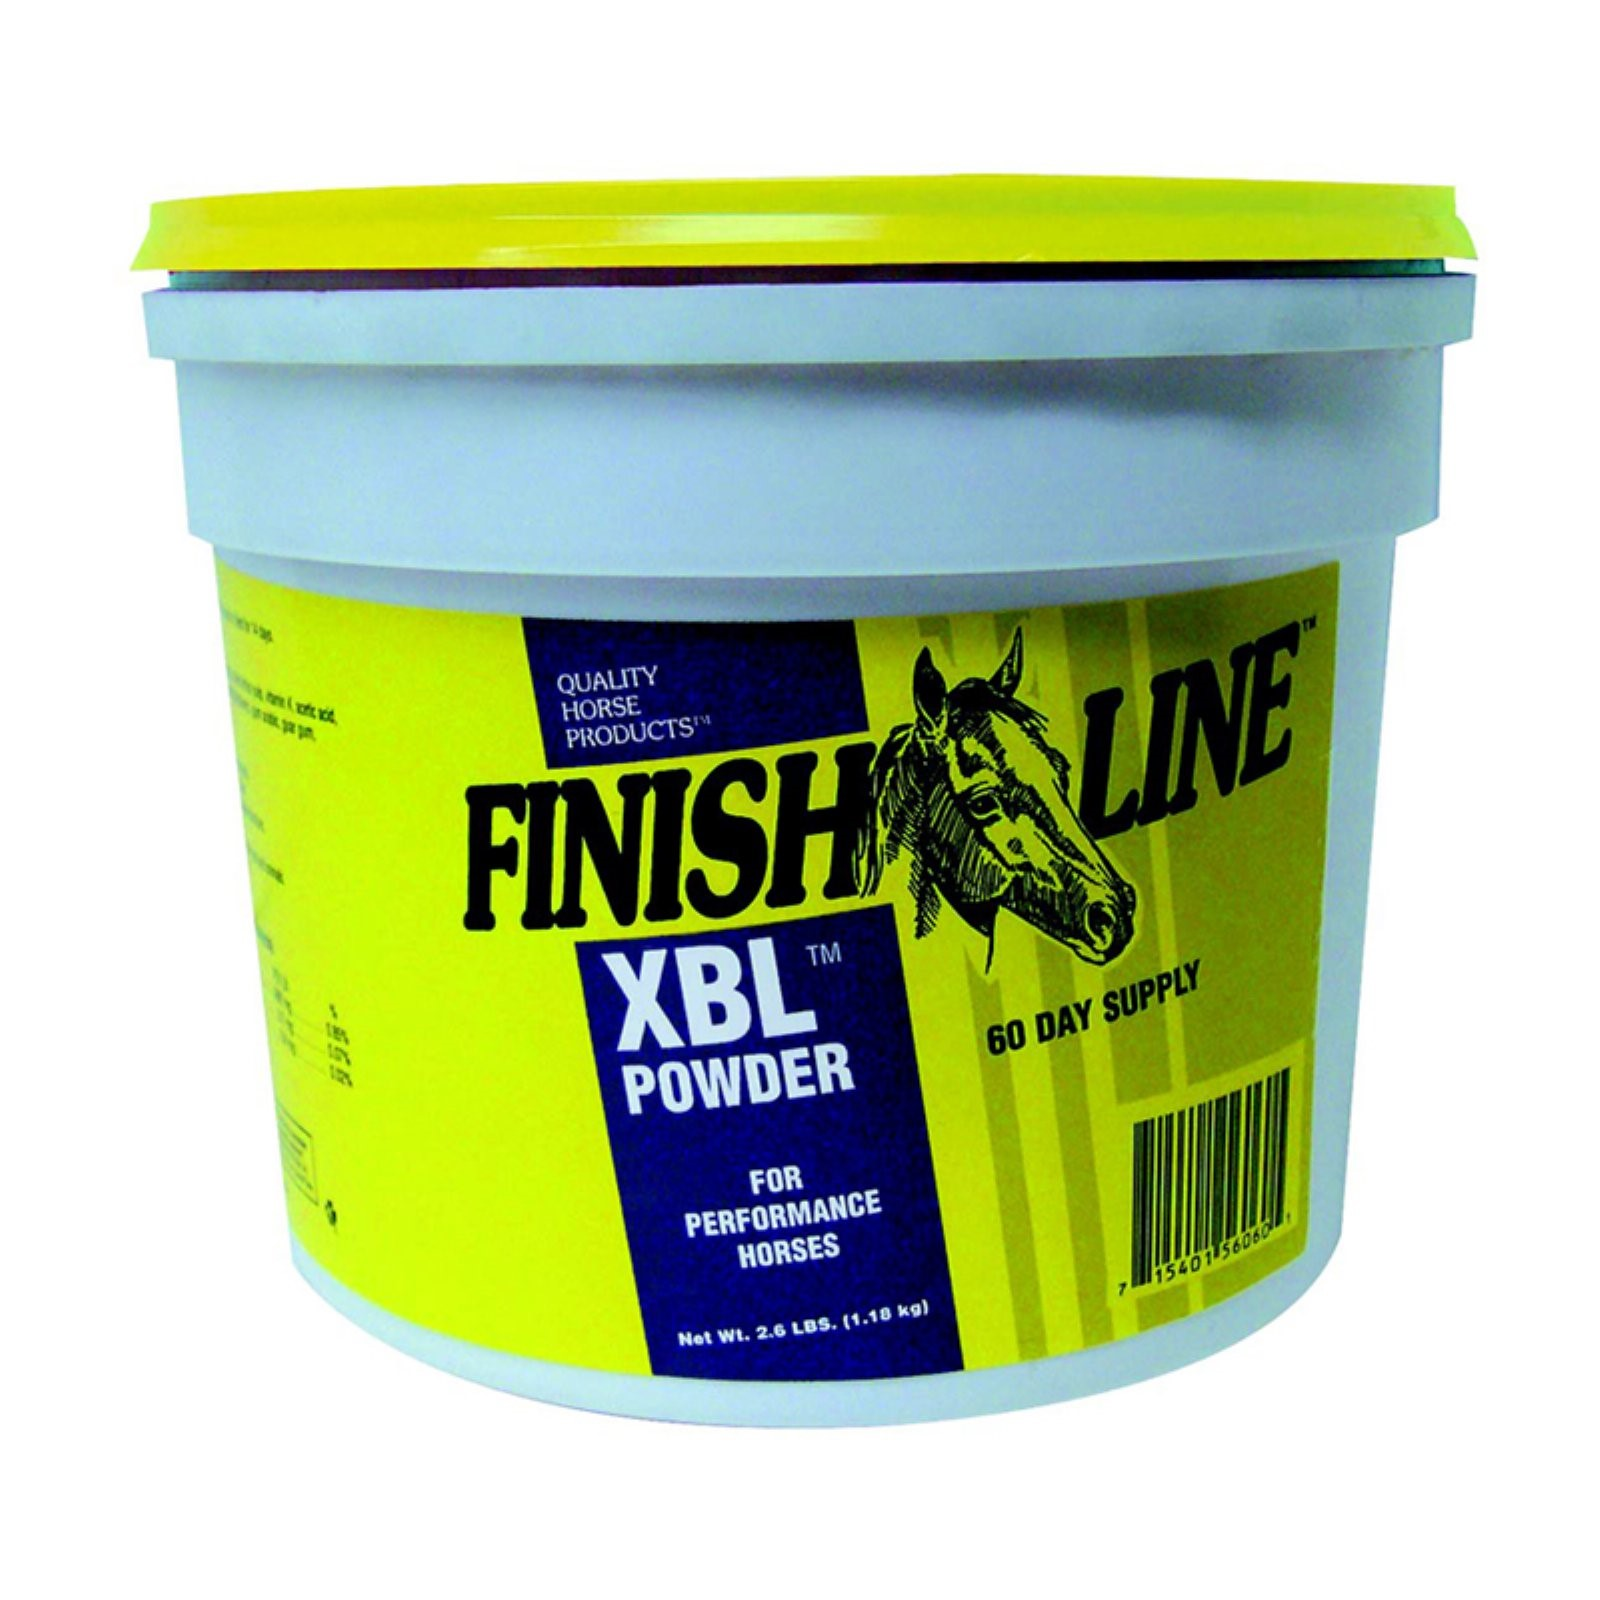 Finish Line XBL Powder Energy & Vitality Support Horse Supplement, 2.6 Lb